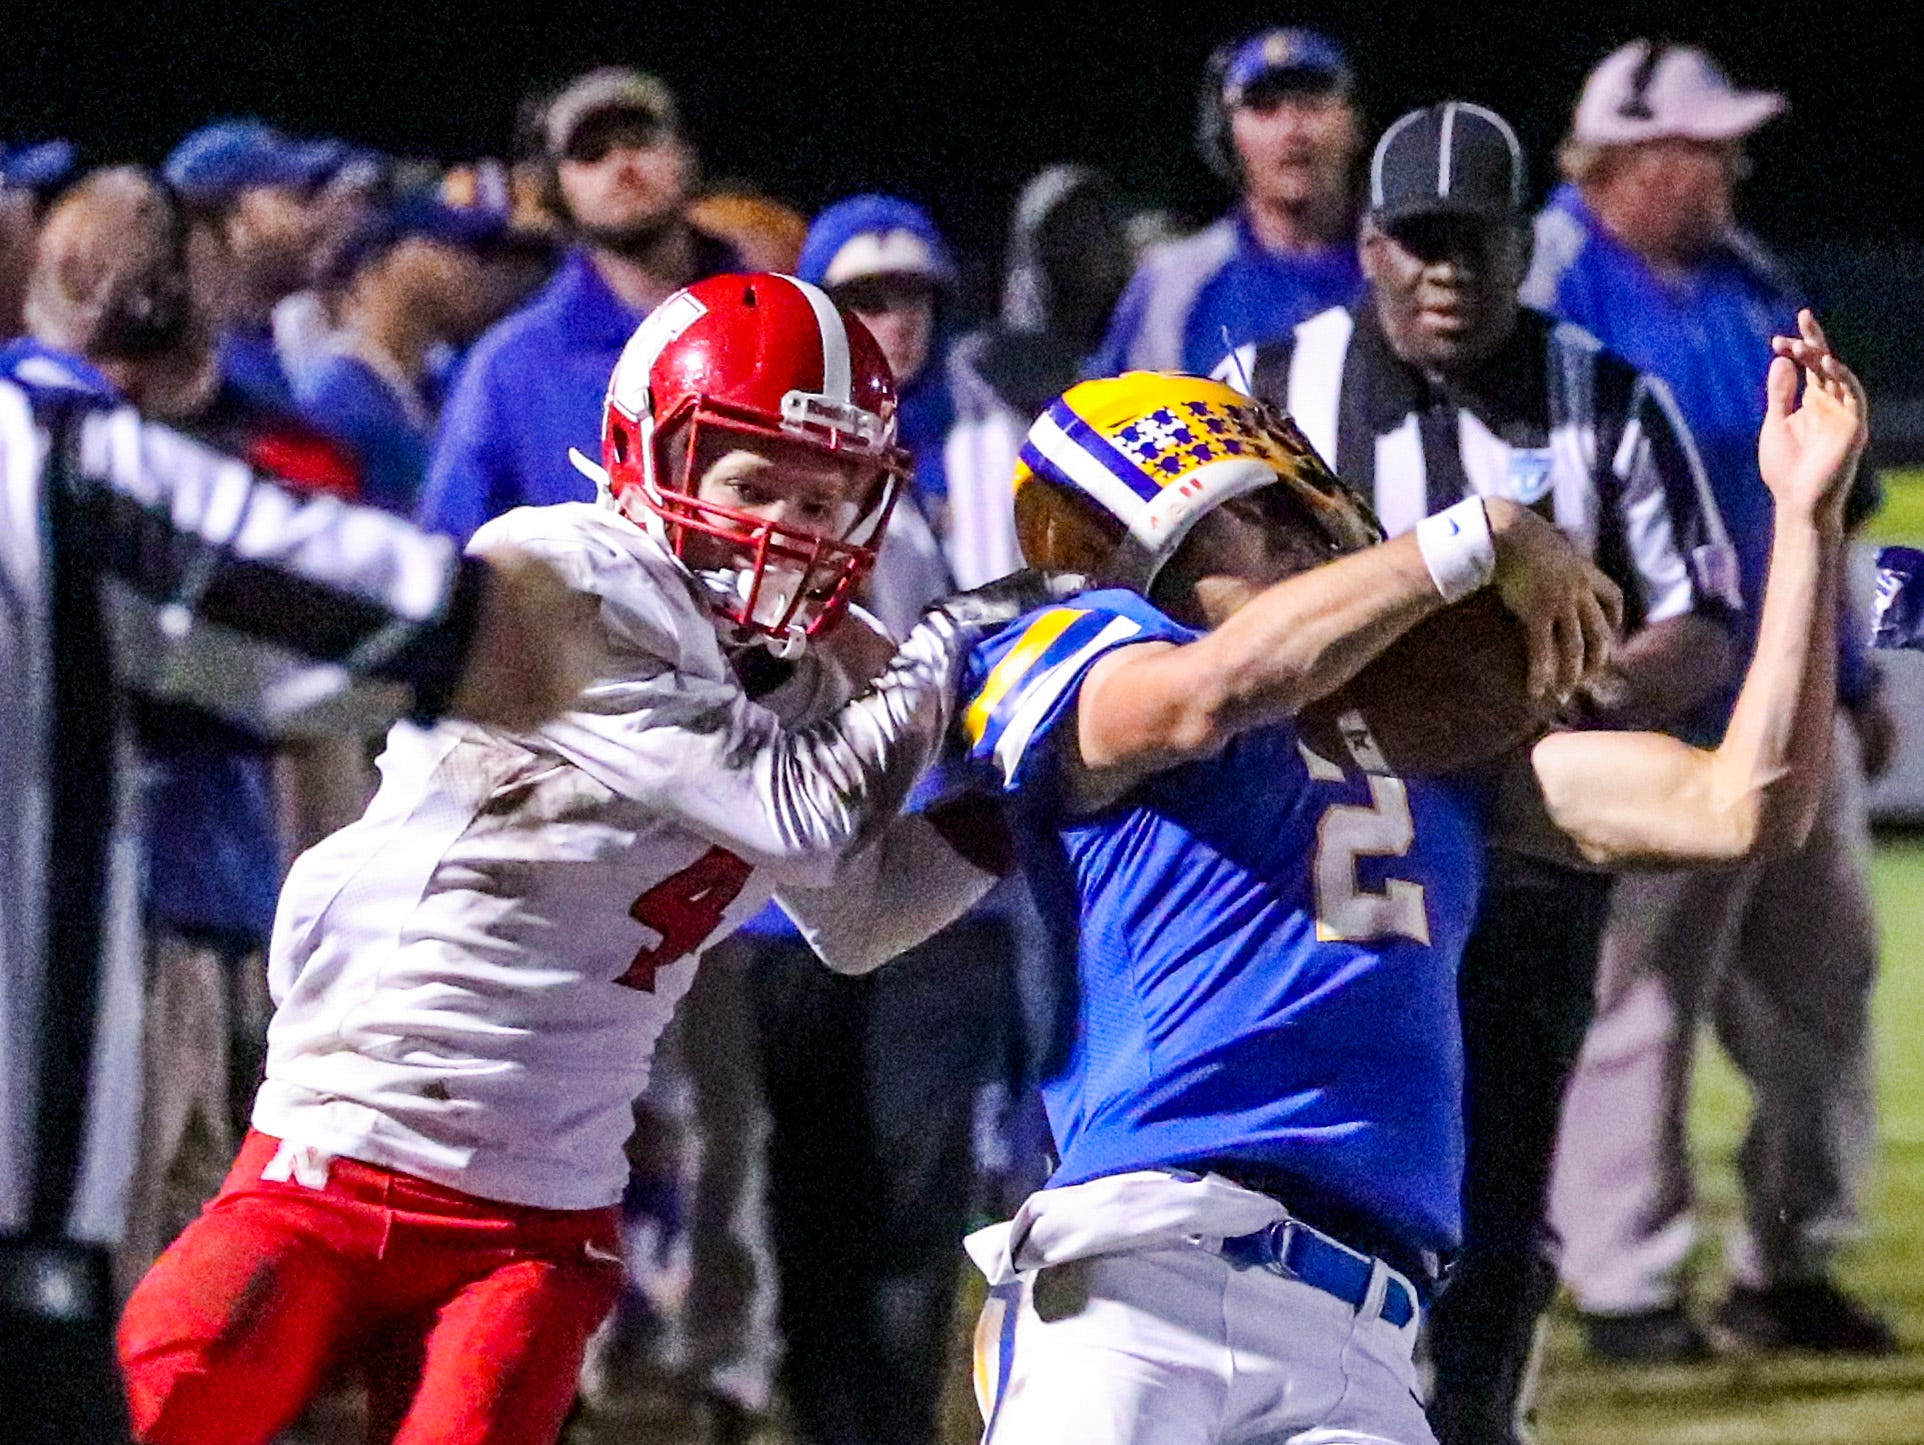 North's Clayton Savinsky rips the helmet of Charlotte quarterback Alex Muse as he brings him down. North Fort Myers played at Charlotte in their regional semifinal. North won 36-20 and will play Naples in next week's game.